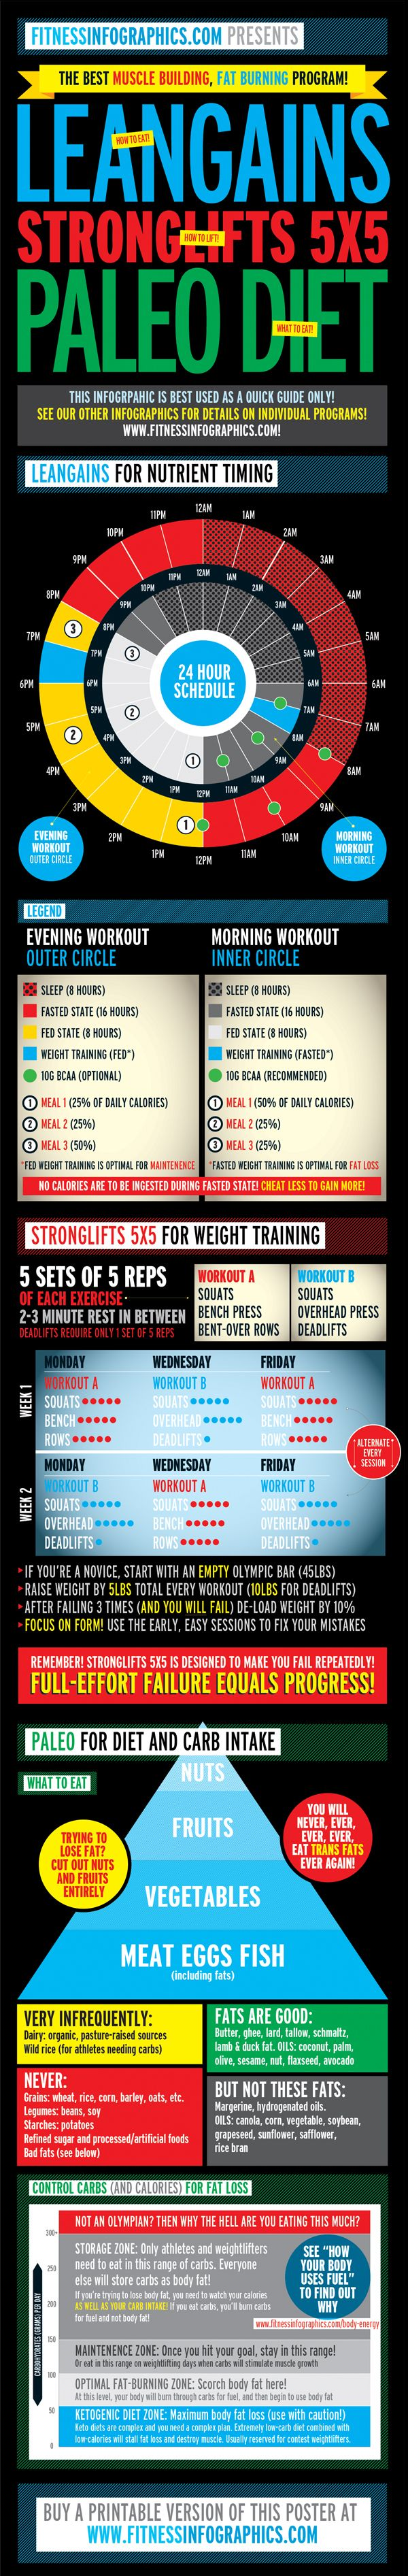 """Like it says: quick guide only. Fitness and health are not single-solution equations. Learn continually and adapt. """"The best muscle building program! [infographic] via @Tribesports"""""""